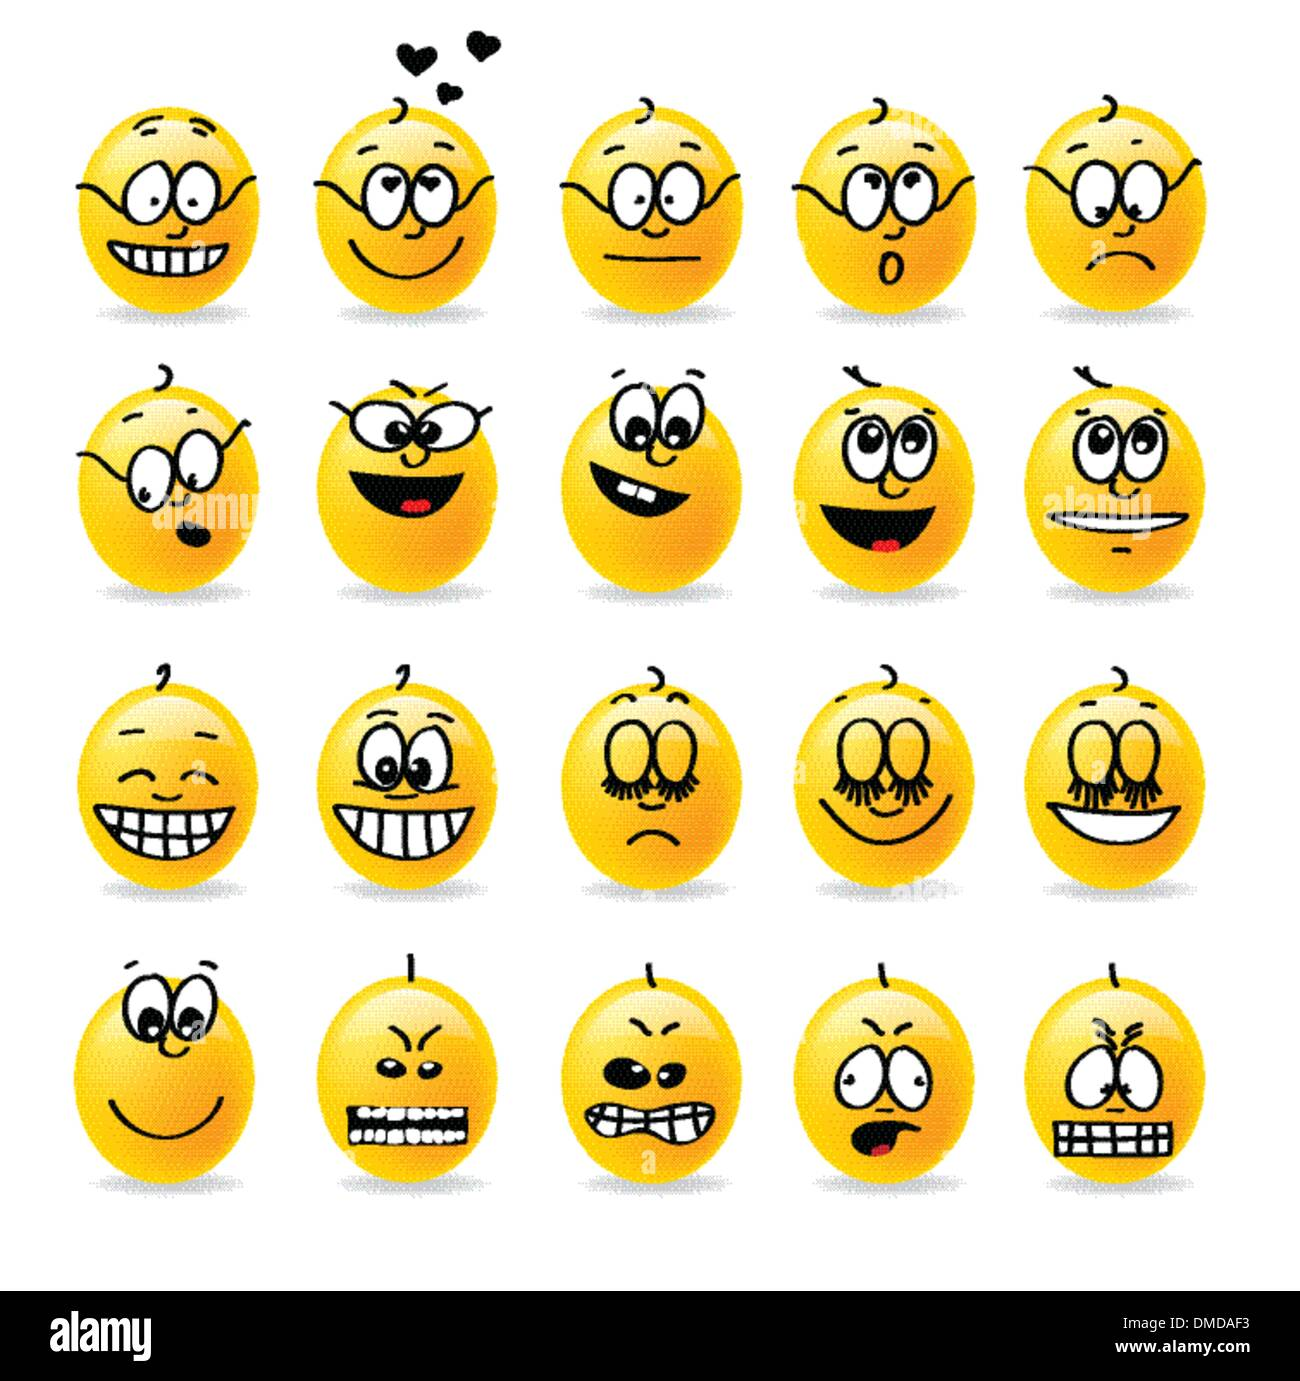 vector smiley emotions moods - Stock Image